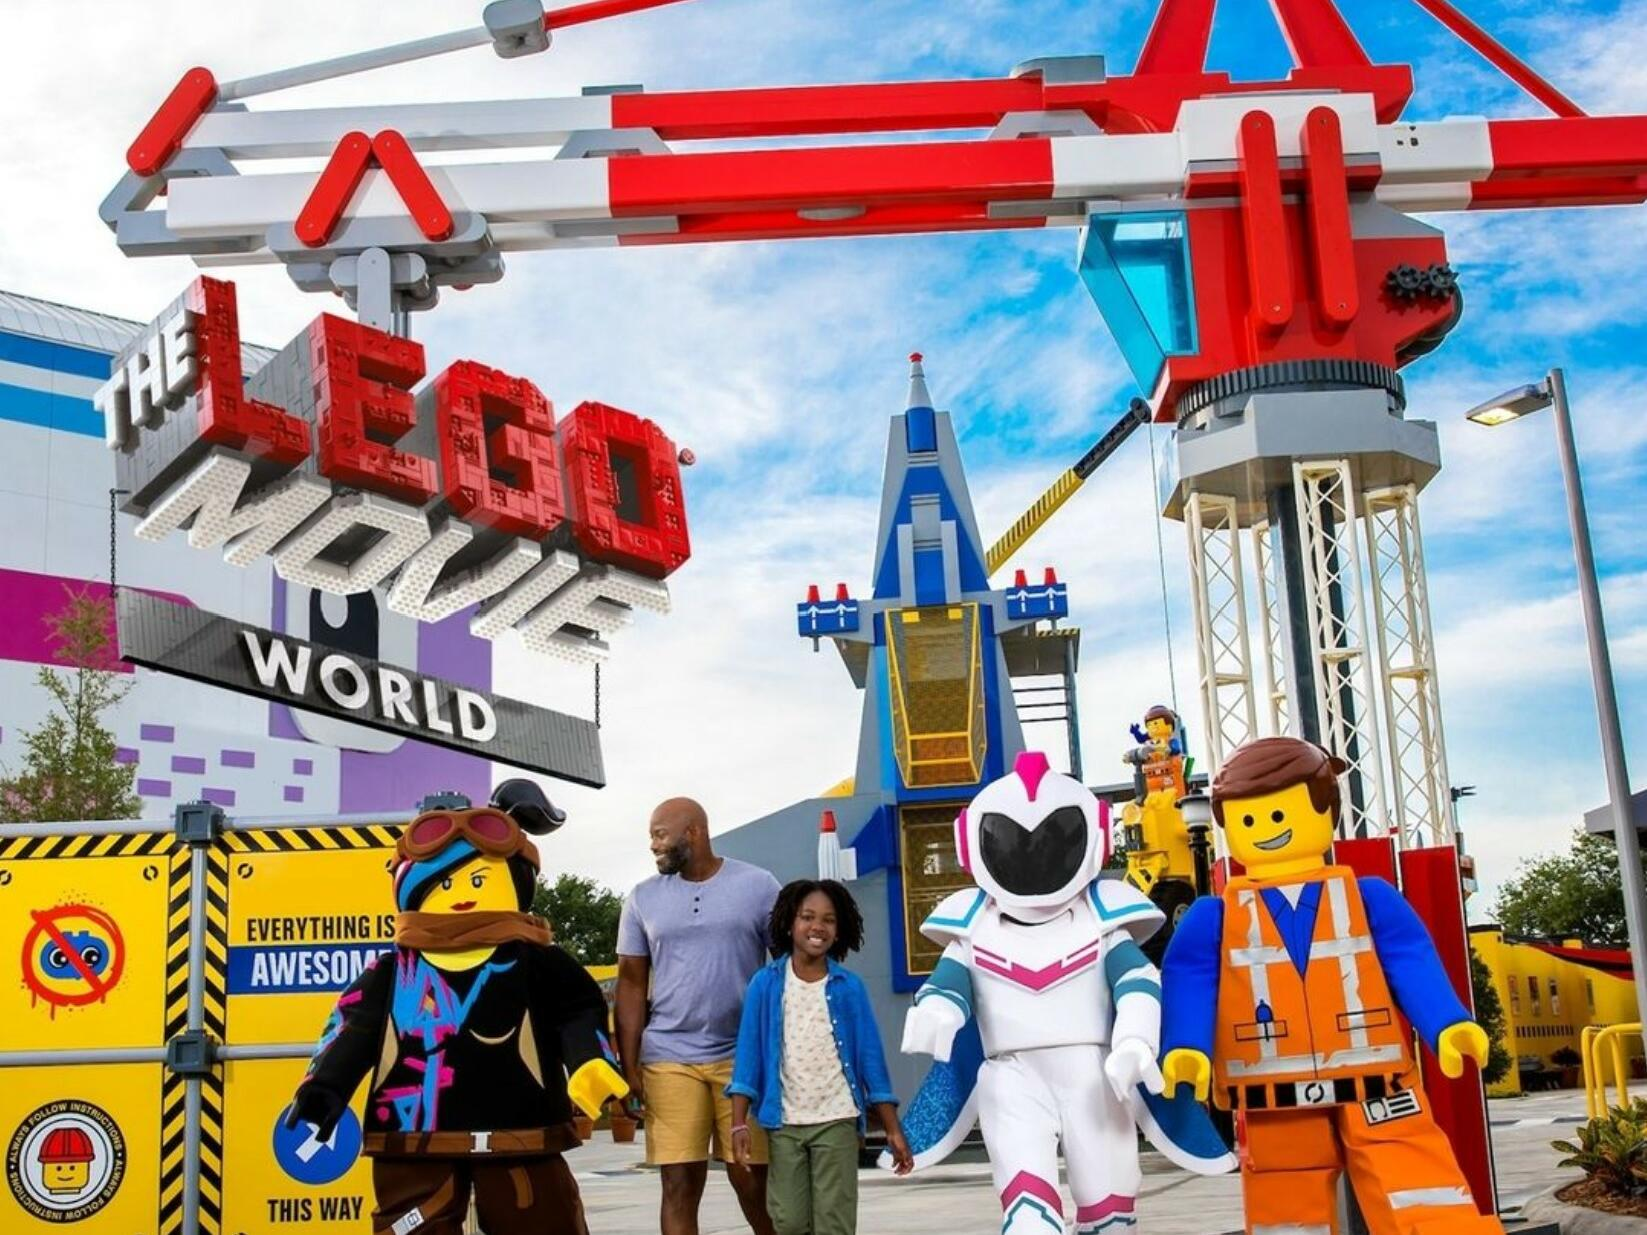 LEGO MOVIE World Now Open in Carlsbad, CA | Carlsbad by the Sea Hotel